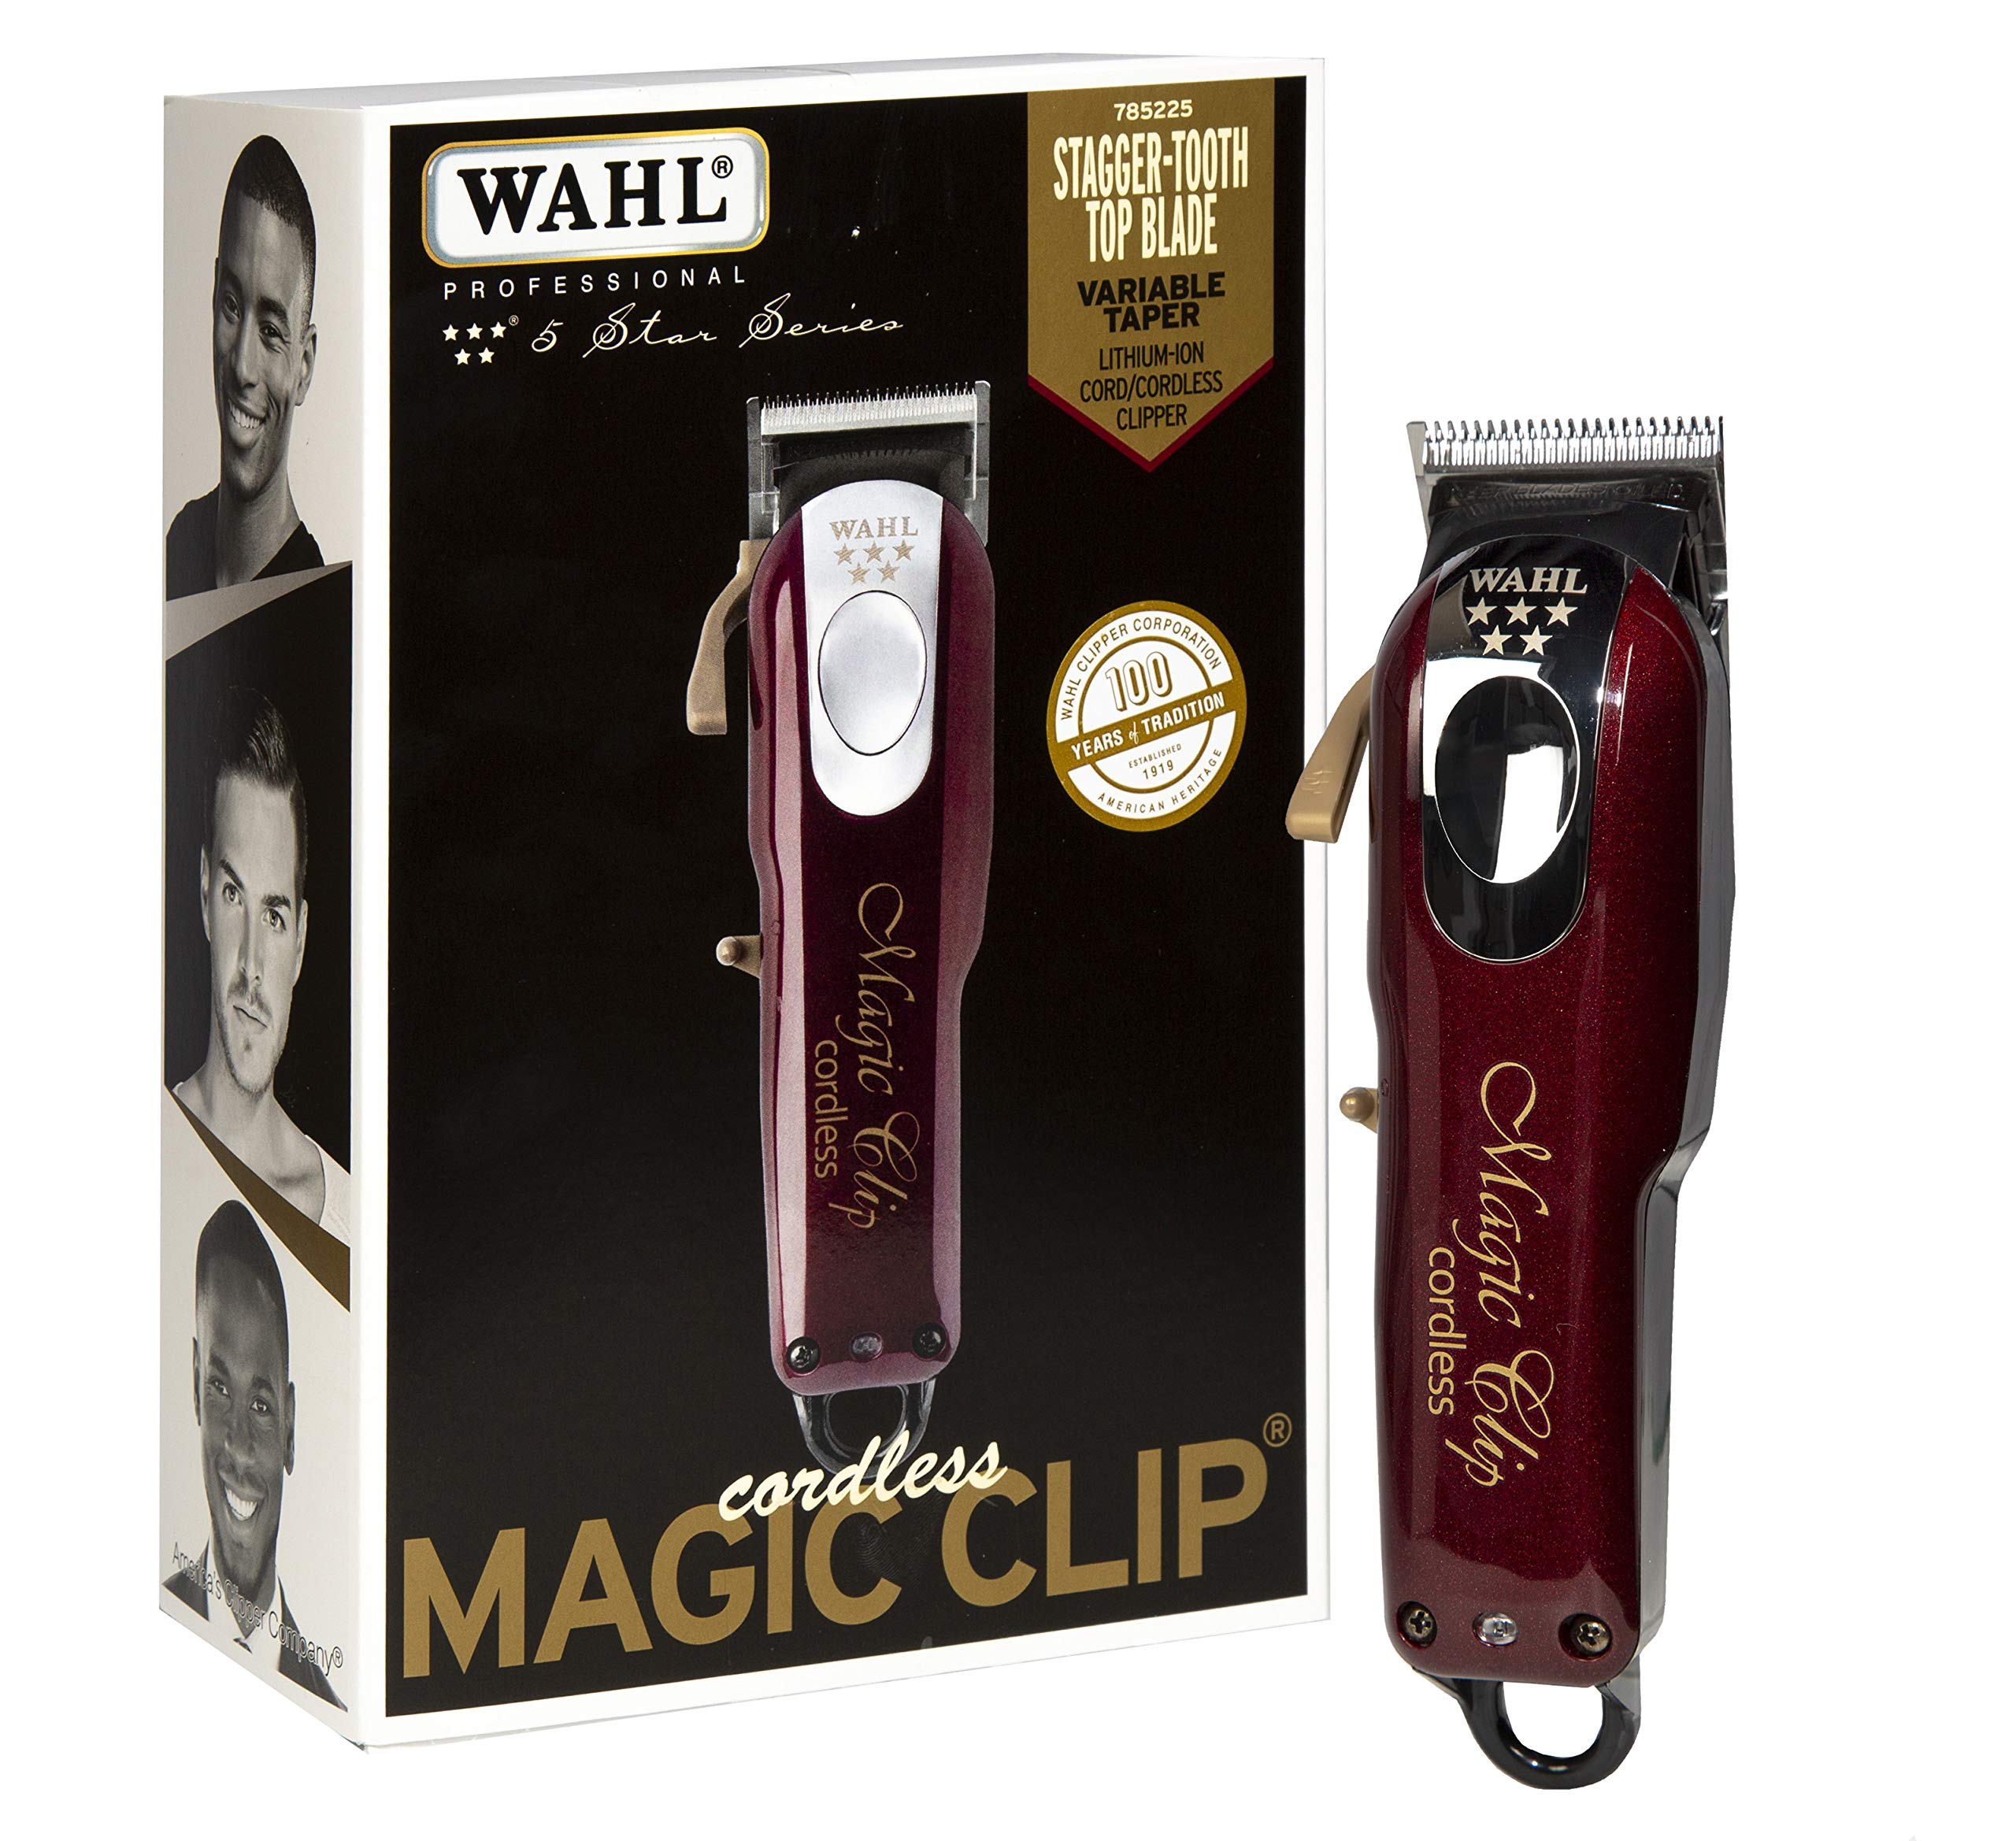 Wahl Professional 5 Star Magic Clip Cord Cordless Hair Clipper for Barbers and Stylists, 6.25 Inch, red, 1 Count